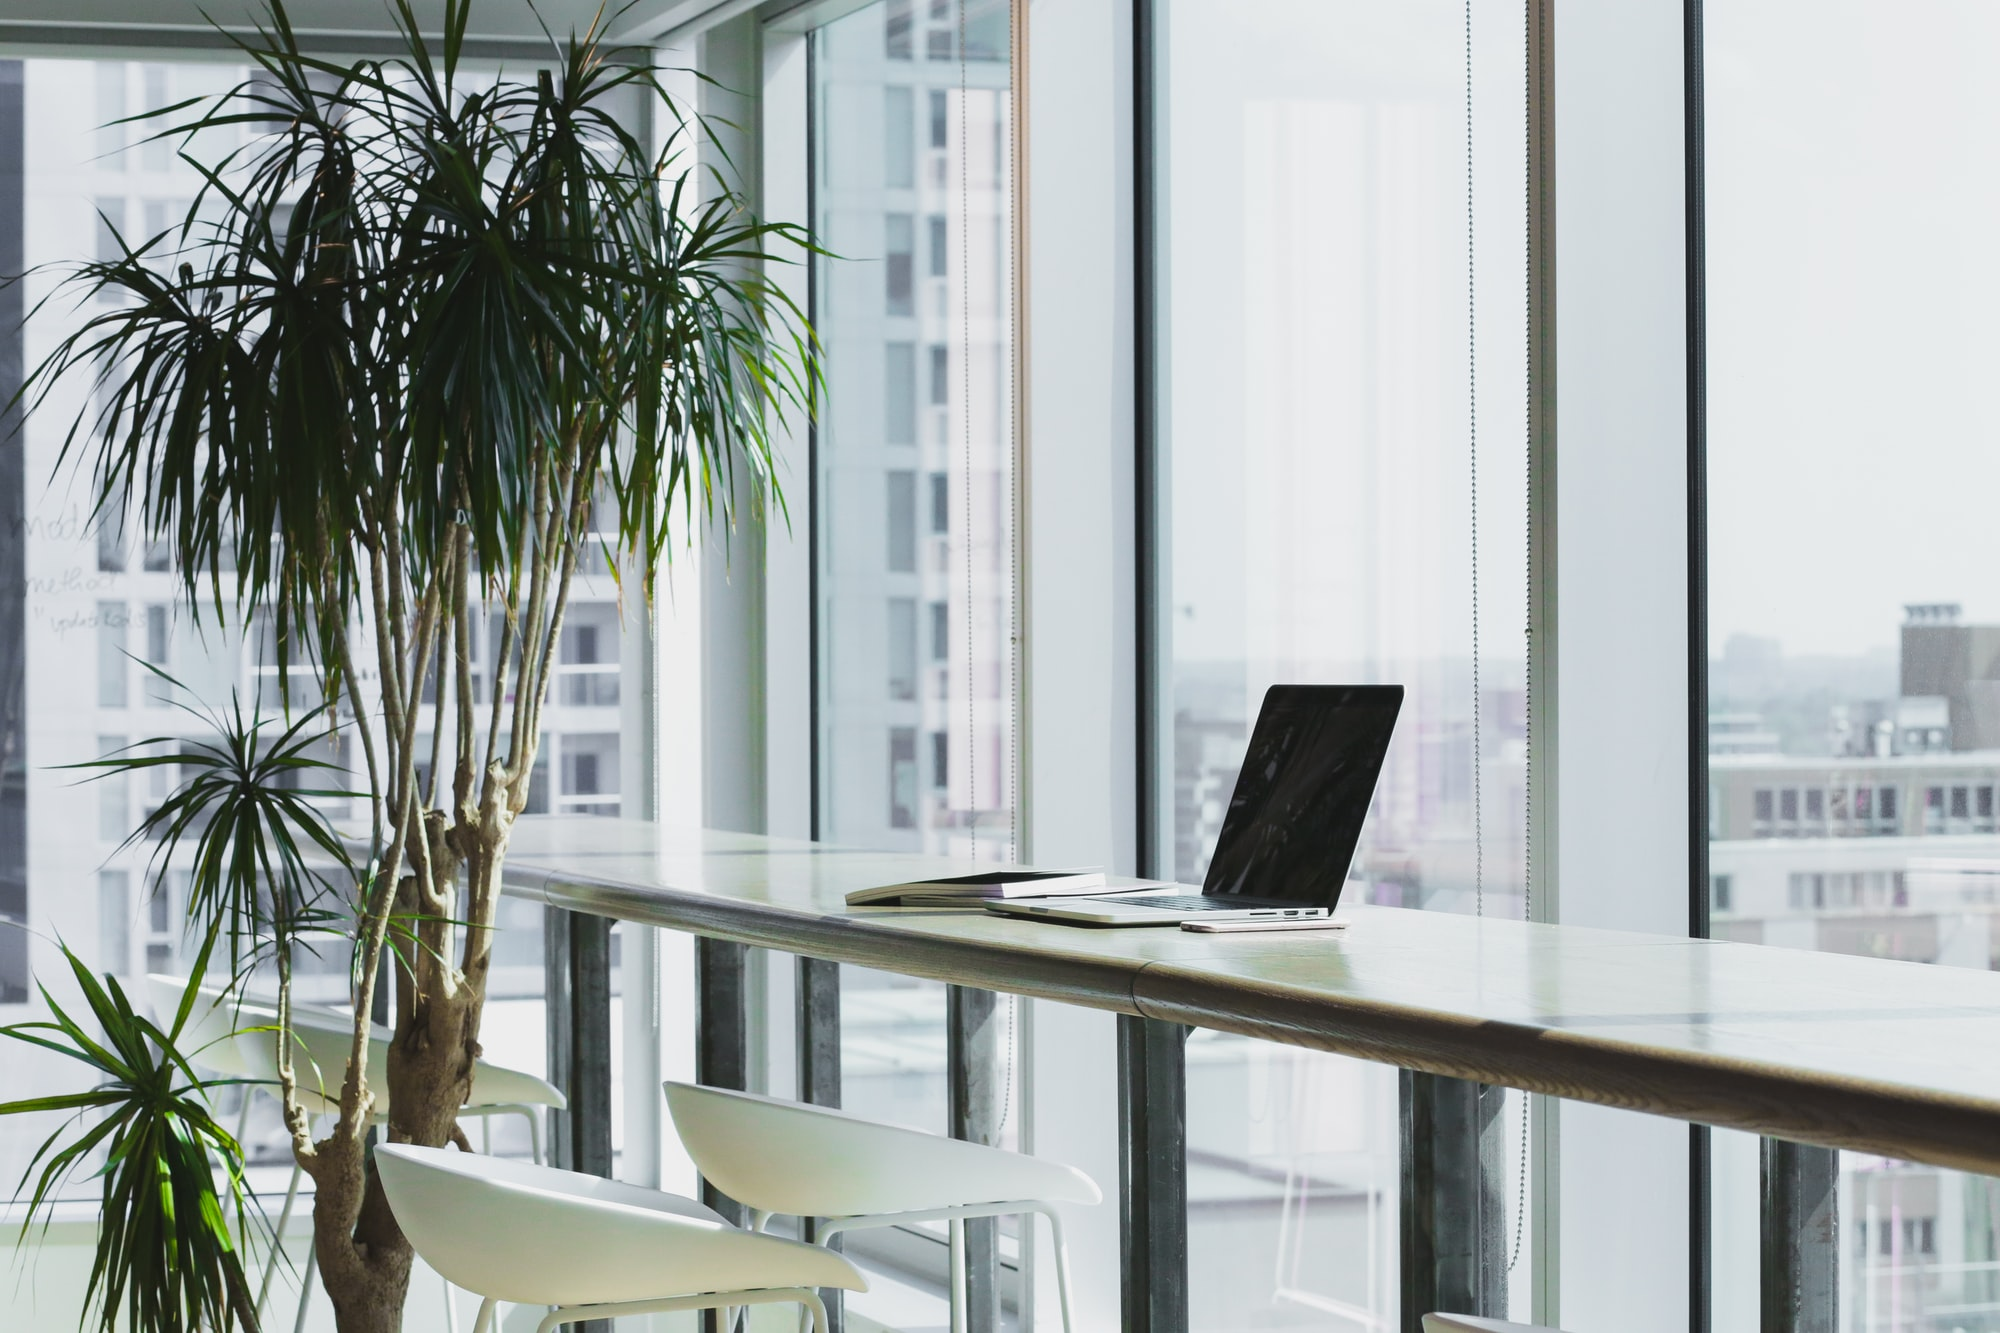 Stock image of a laptop sitting on a bench in a corporate office overlooking a city